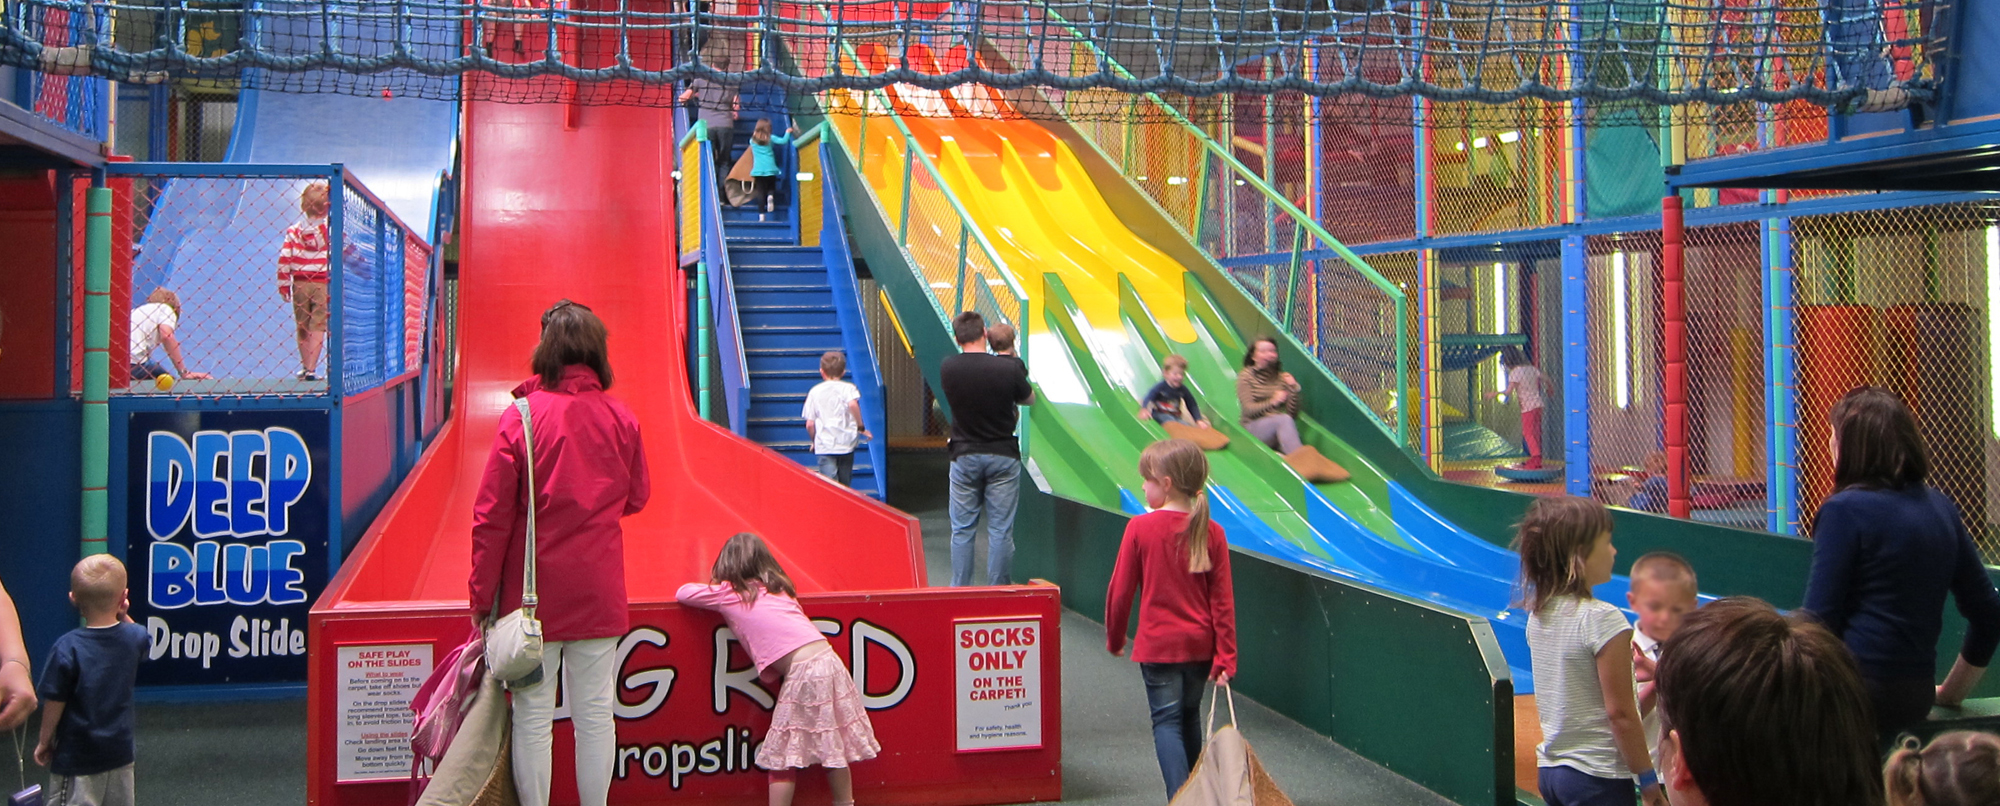 Attractions paradise park for Indoor play slide